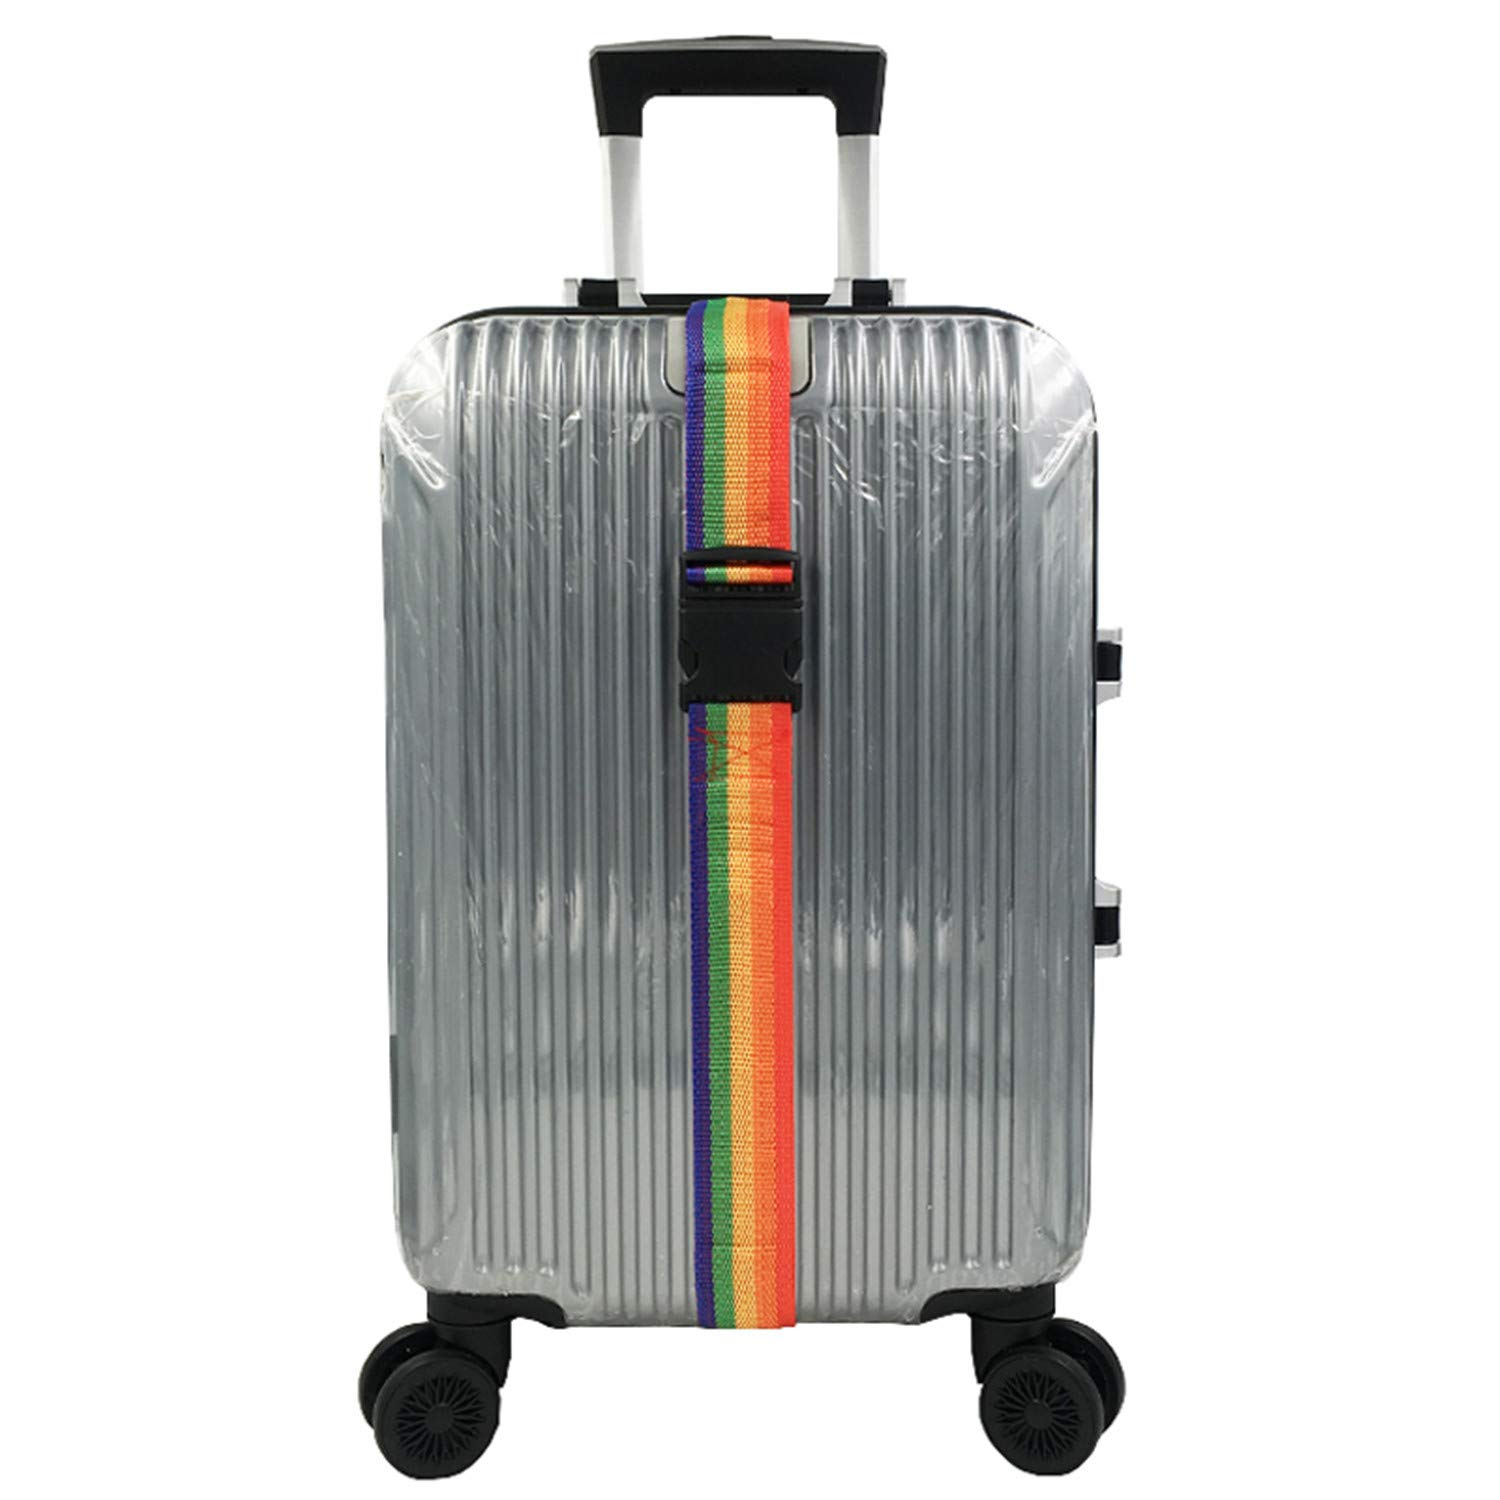 Rainbow Adjustable Luggage Strap 2 Pieces Polyester Baggage Rope Travel Suitcase Trolley Backpack Luggage Packing Belt